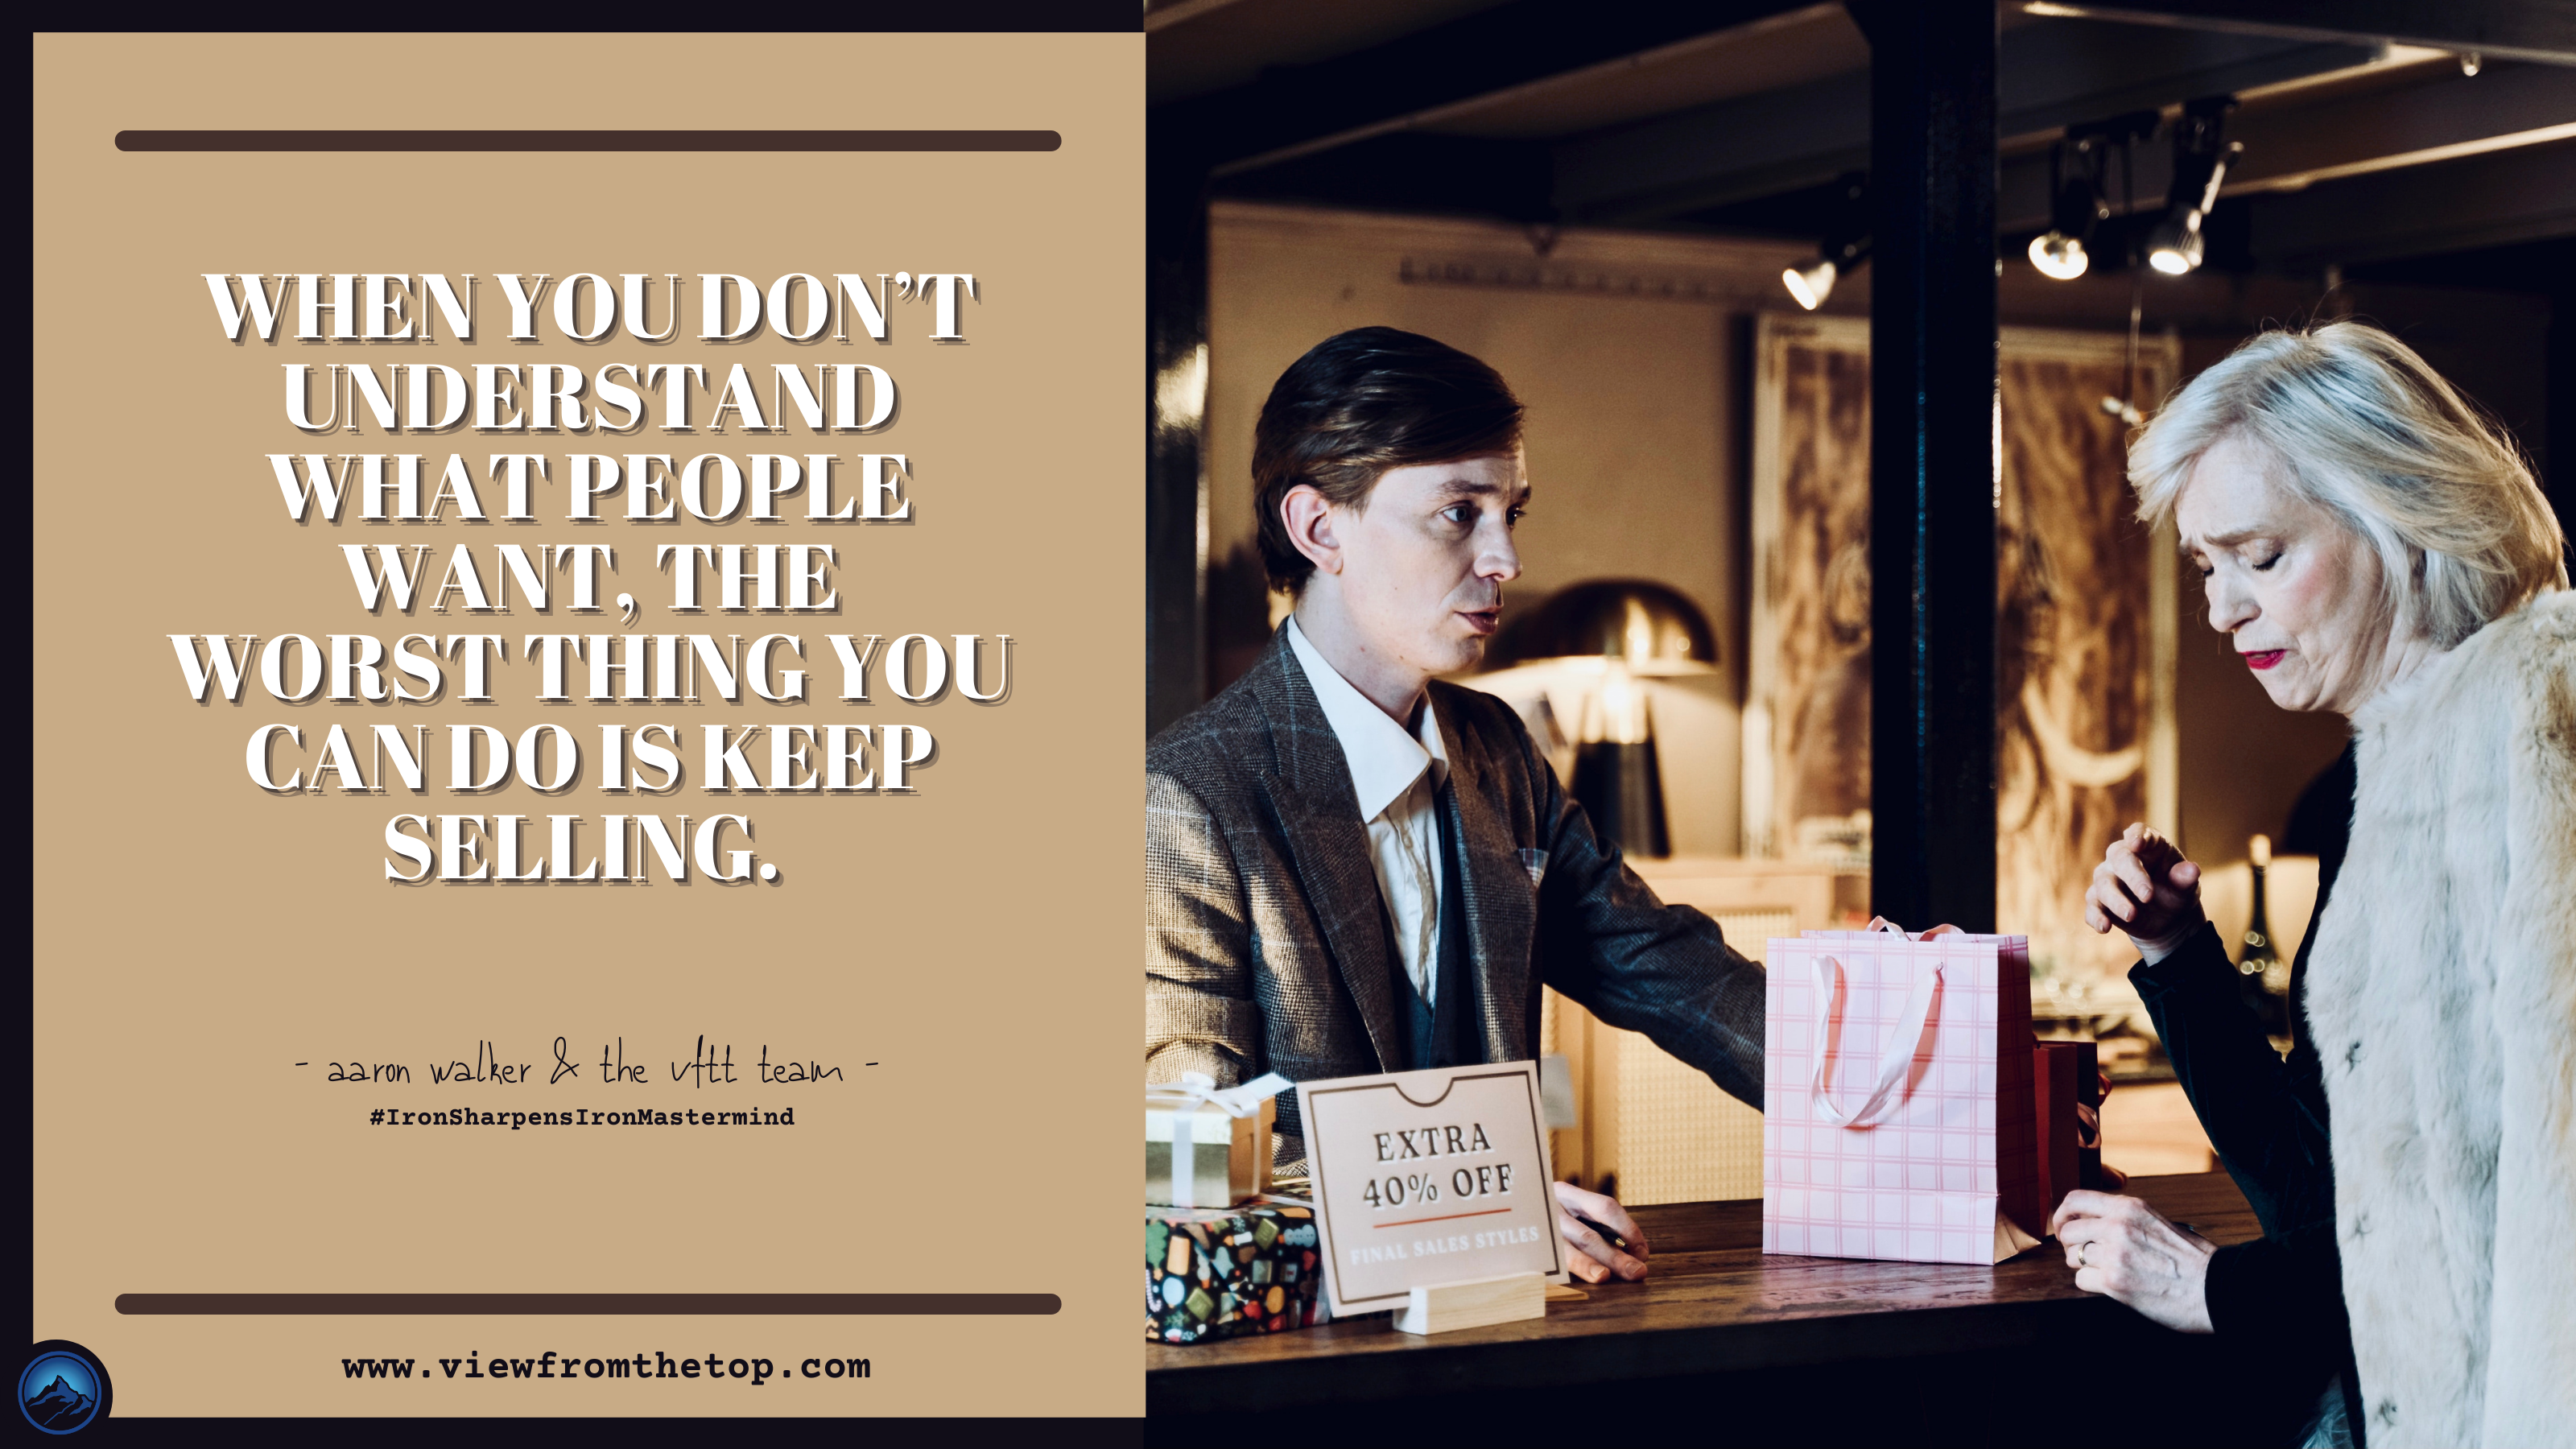 When you don't understand what people want, the worst thing you can do is keep selling.